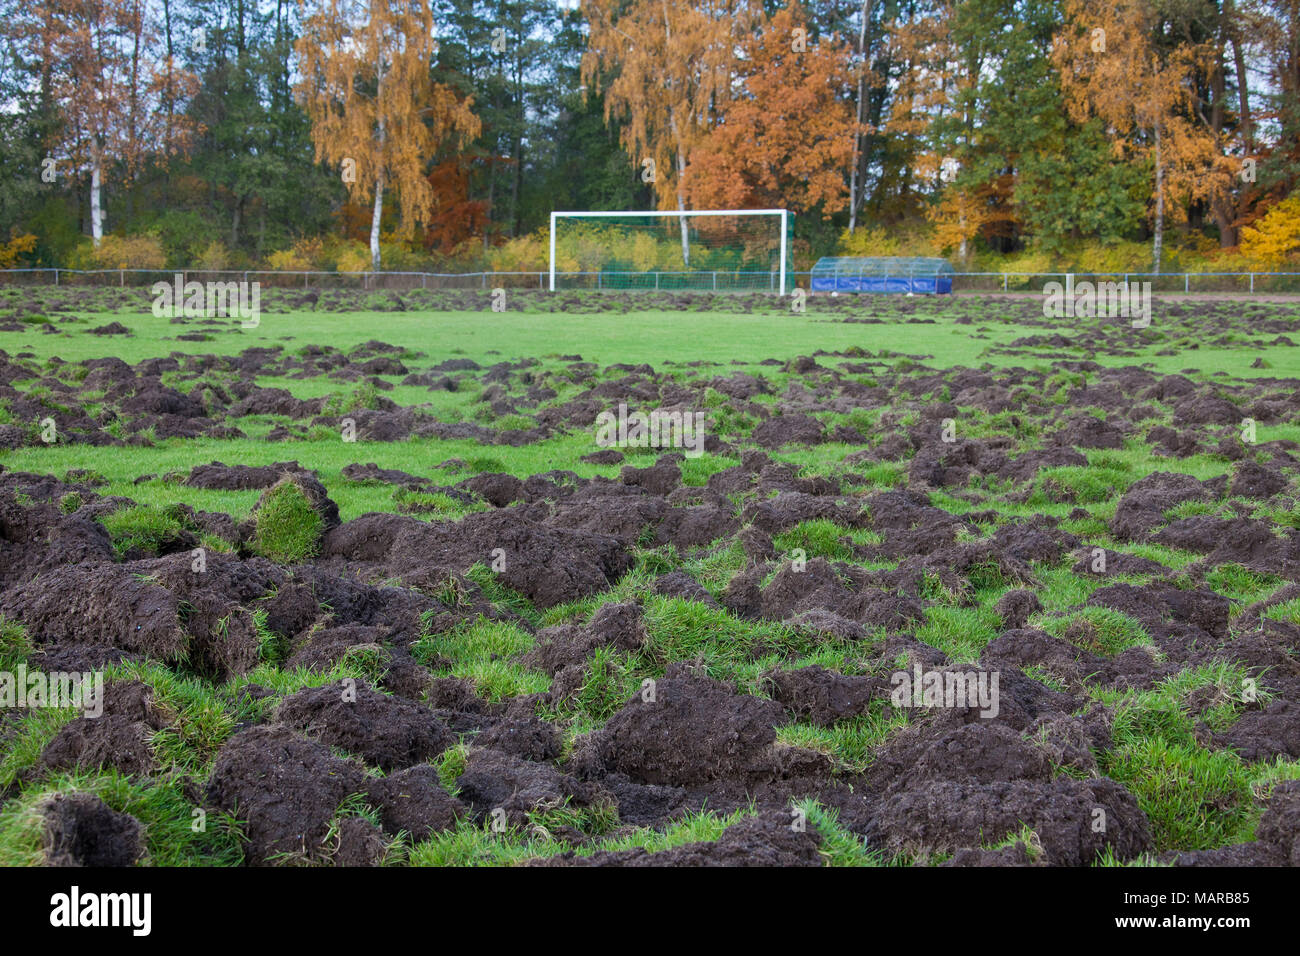 Wild Boar (Sus scrofa). Sports ground dug up by wild boars. Germany - Stock Image